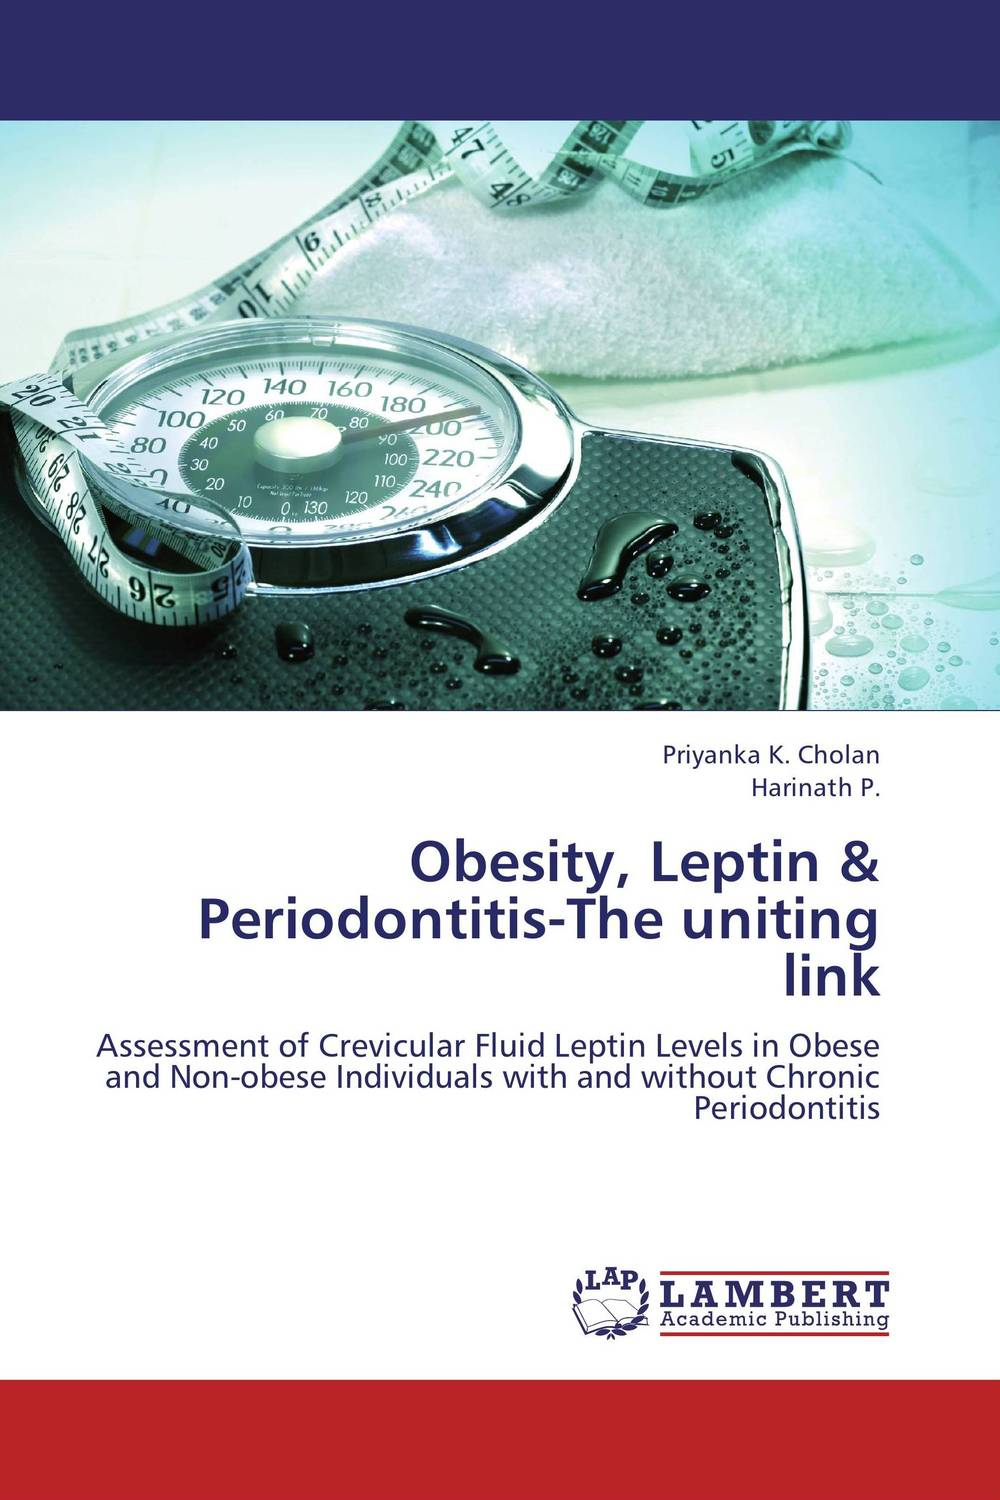 Obesity, Leptin & Periodontitis-The uniting link leptin and adiponectin